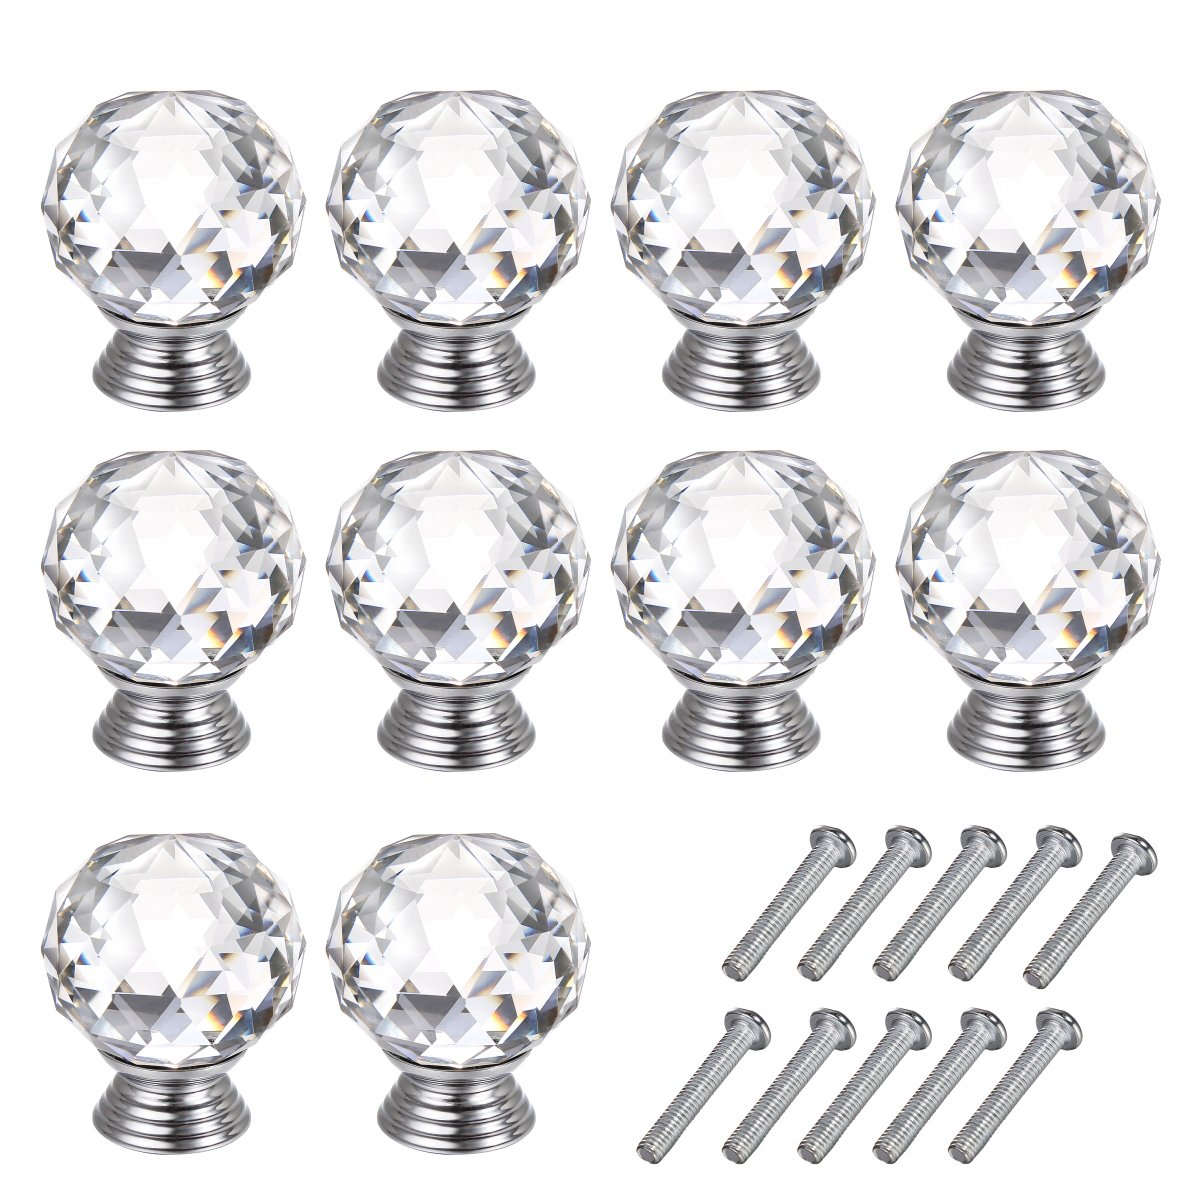 GBGS 10 Pcs Diam 30mm Round Crystal Glass Cabinet Knobs Drawer Pull Furniture Handle OTTFF LS001-W-x10